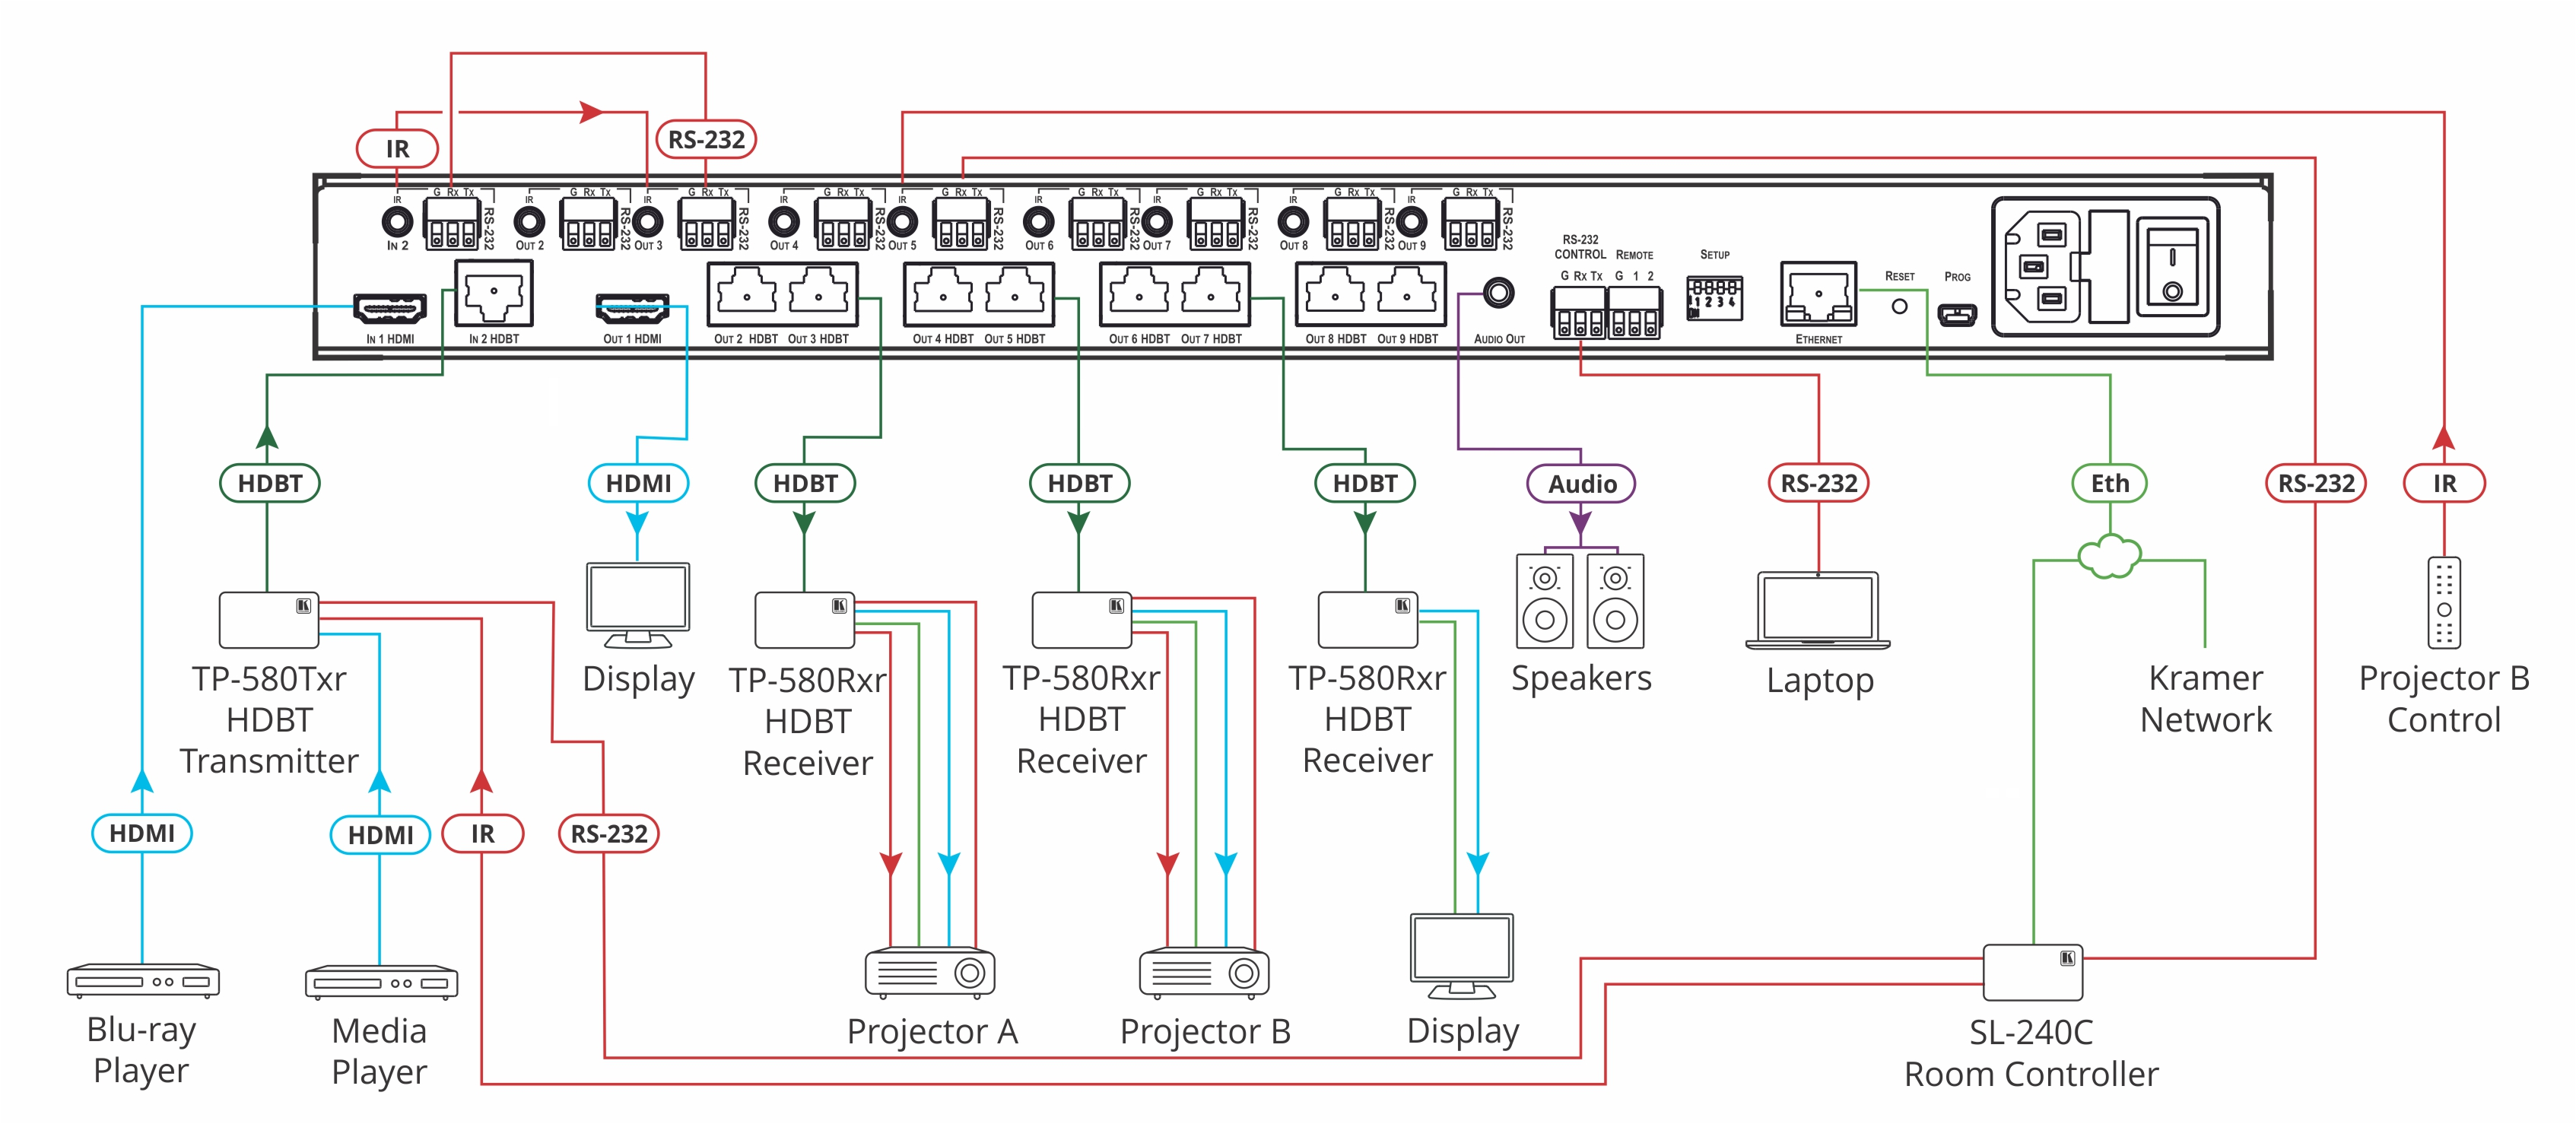 Vm 218dtxr 2x18 4k60 420 Hdmi Extendedreach Hdbaset With Connection Diagram Shipping Weight 32kg 71lbs Approx